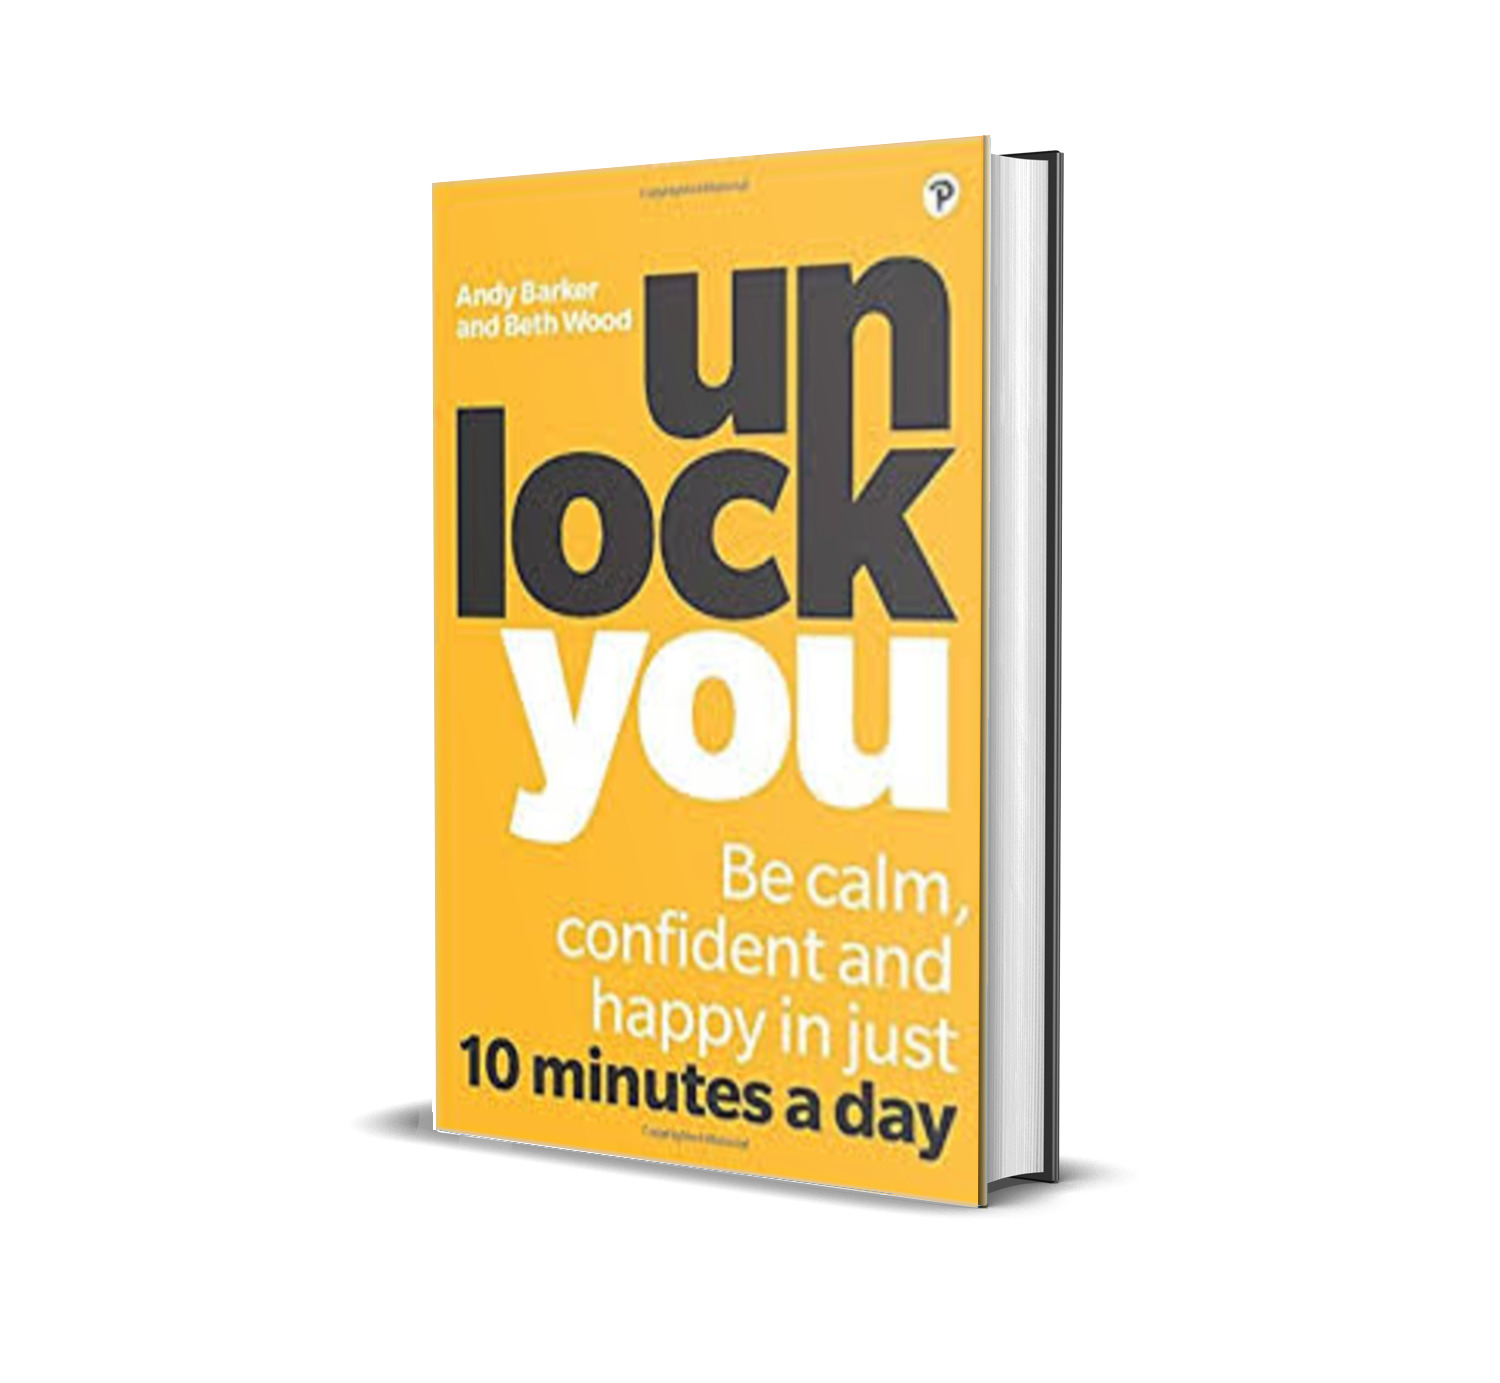 UNLOCK YOU - ANDY BARKER